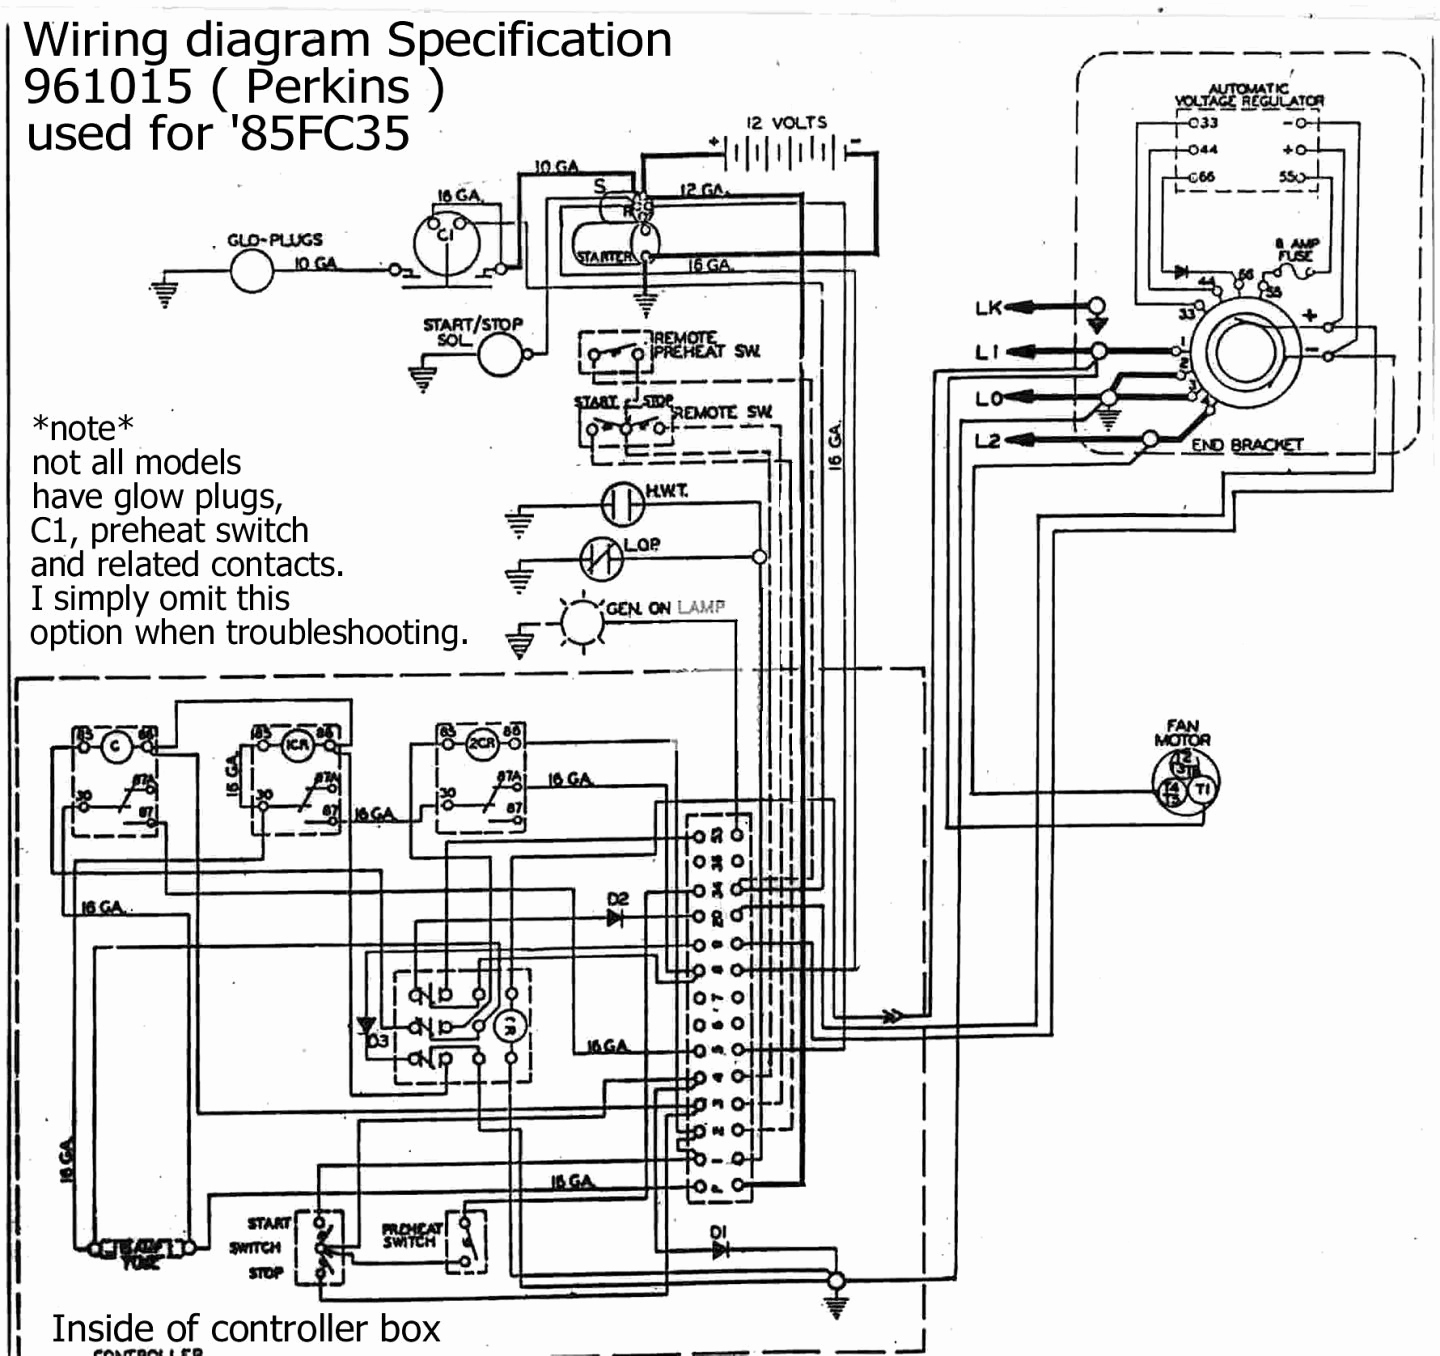 wiring diagram how to make and use diagrams